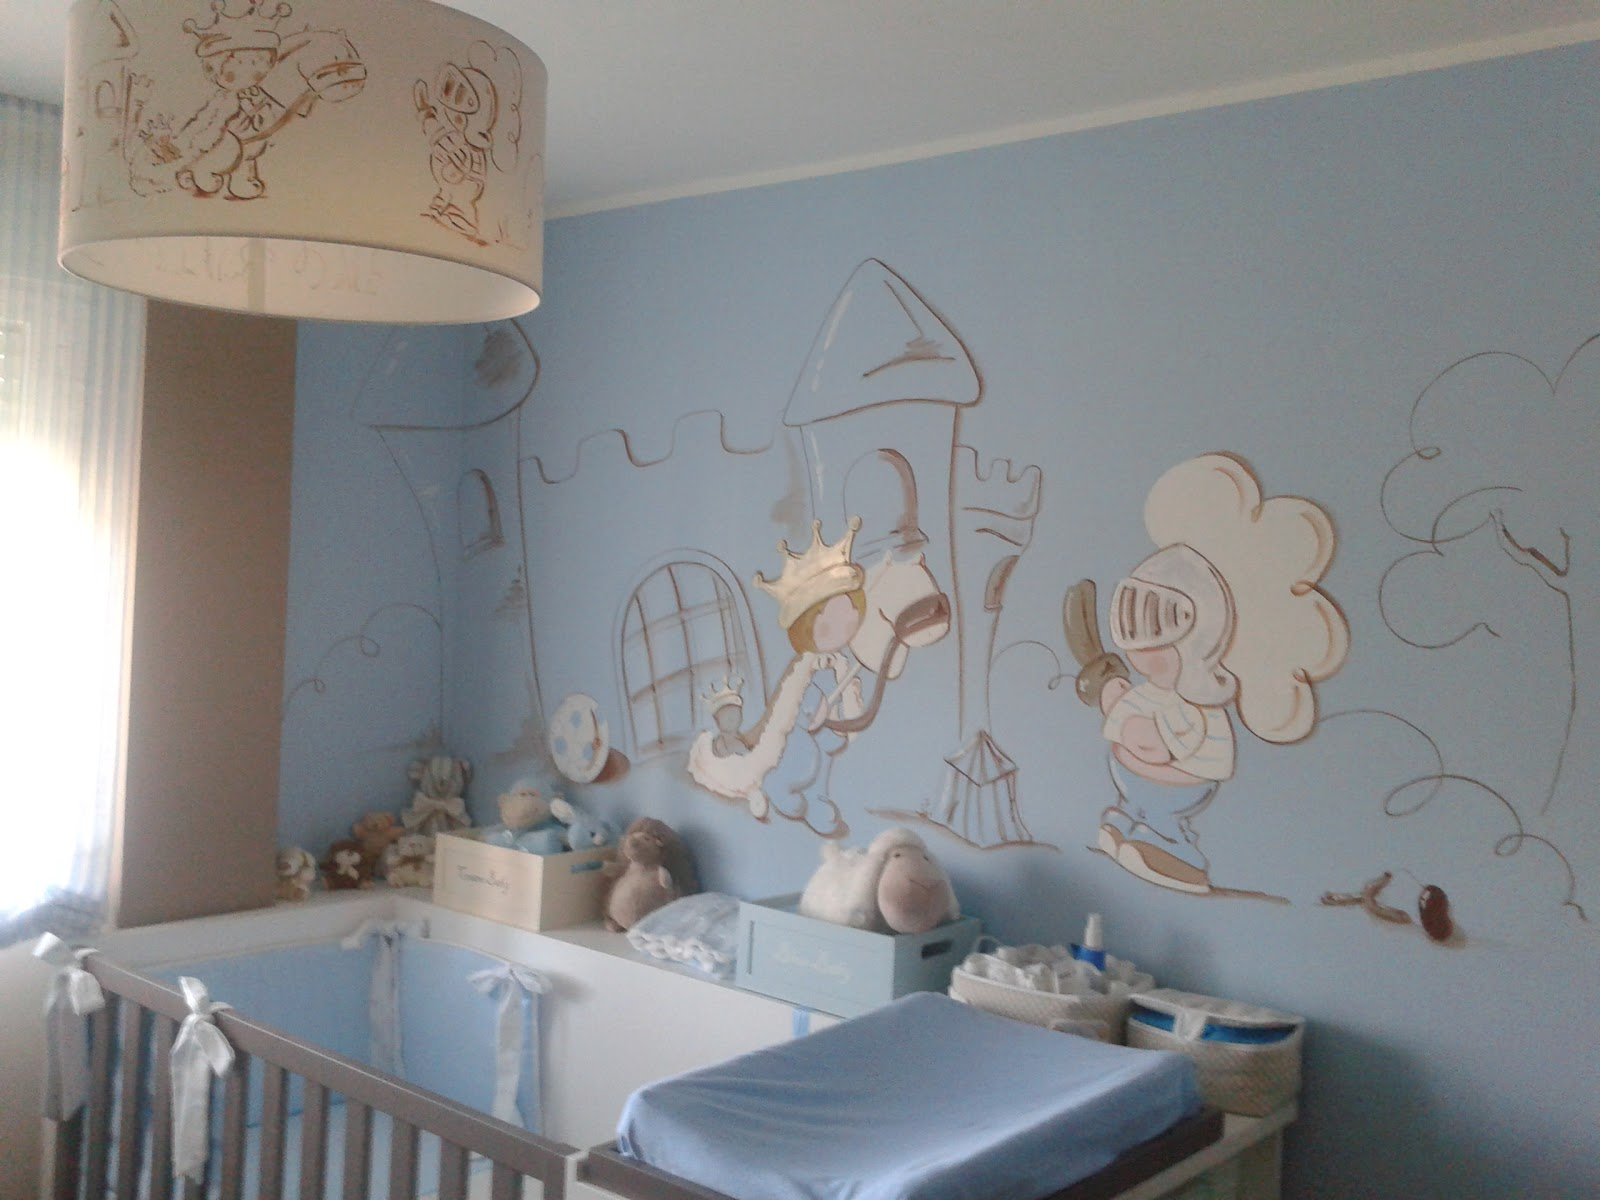 Deco murale chambre bebe fille for Decoration murale chambre fille